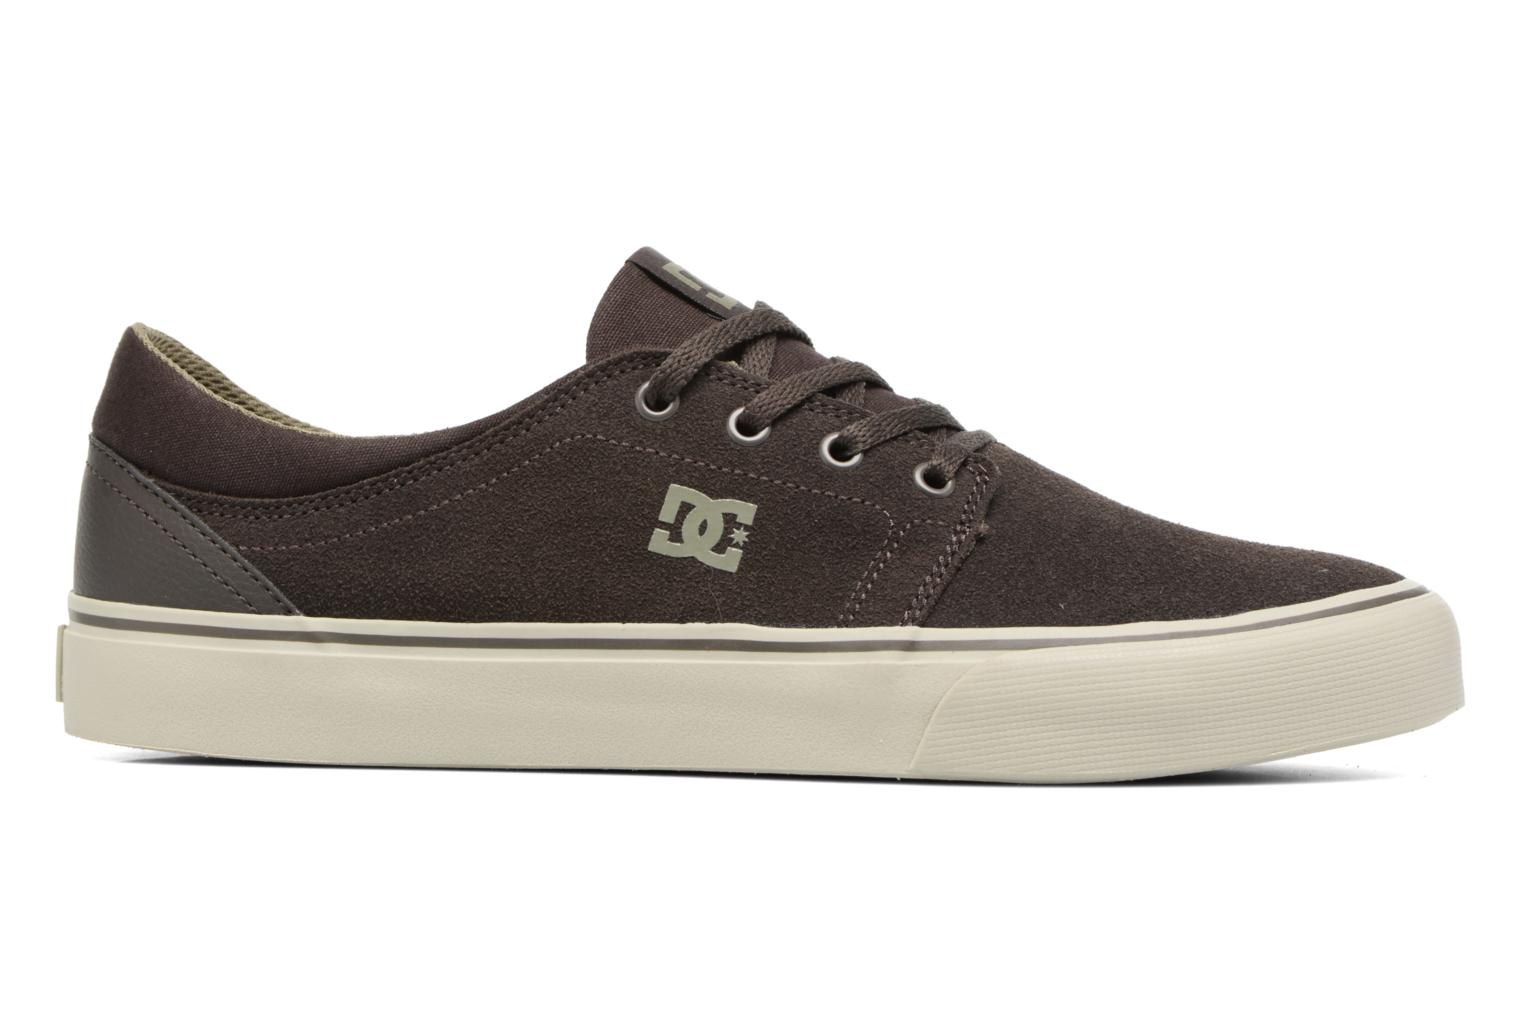 Trase SD M Military Green/Cream